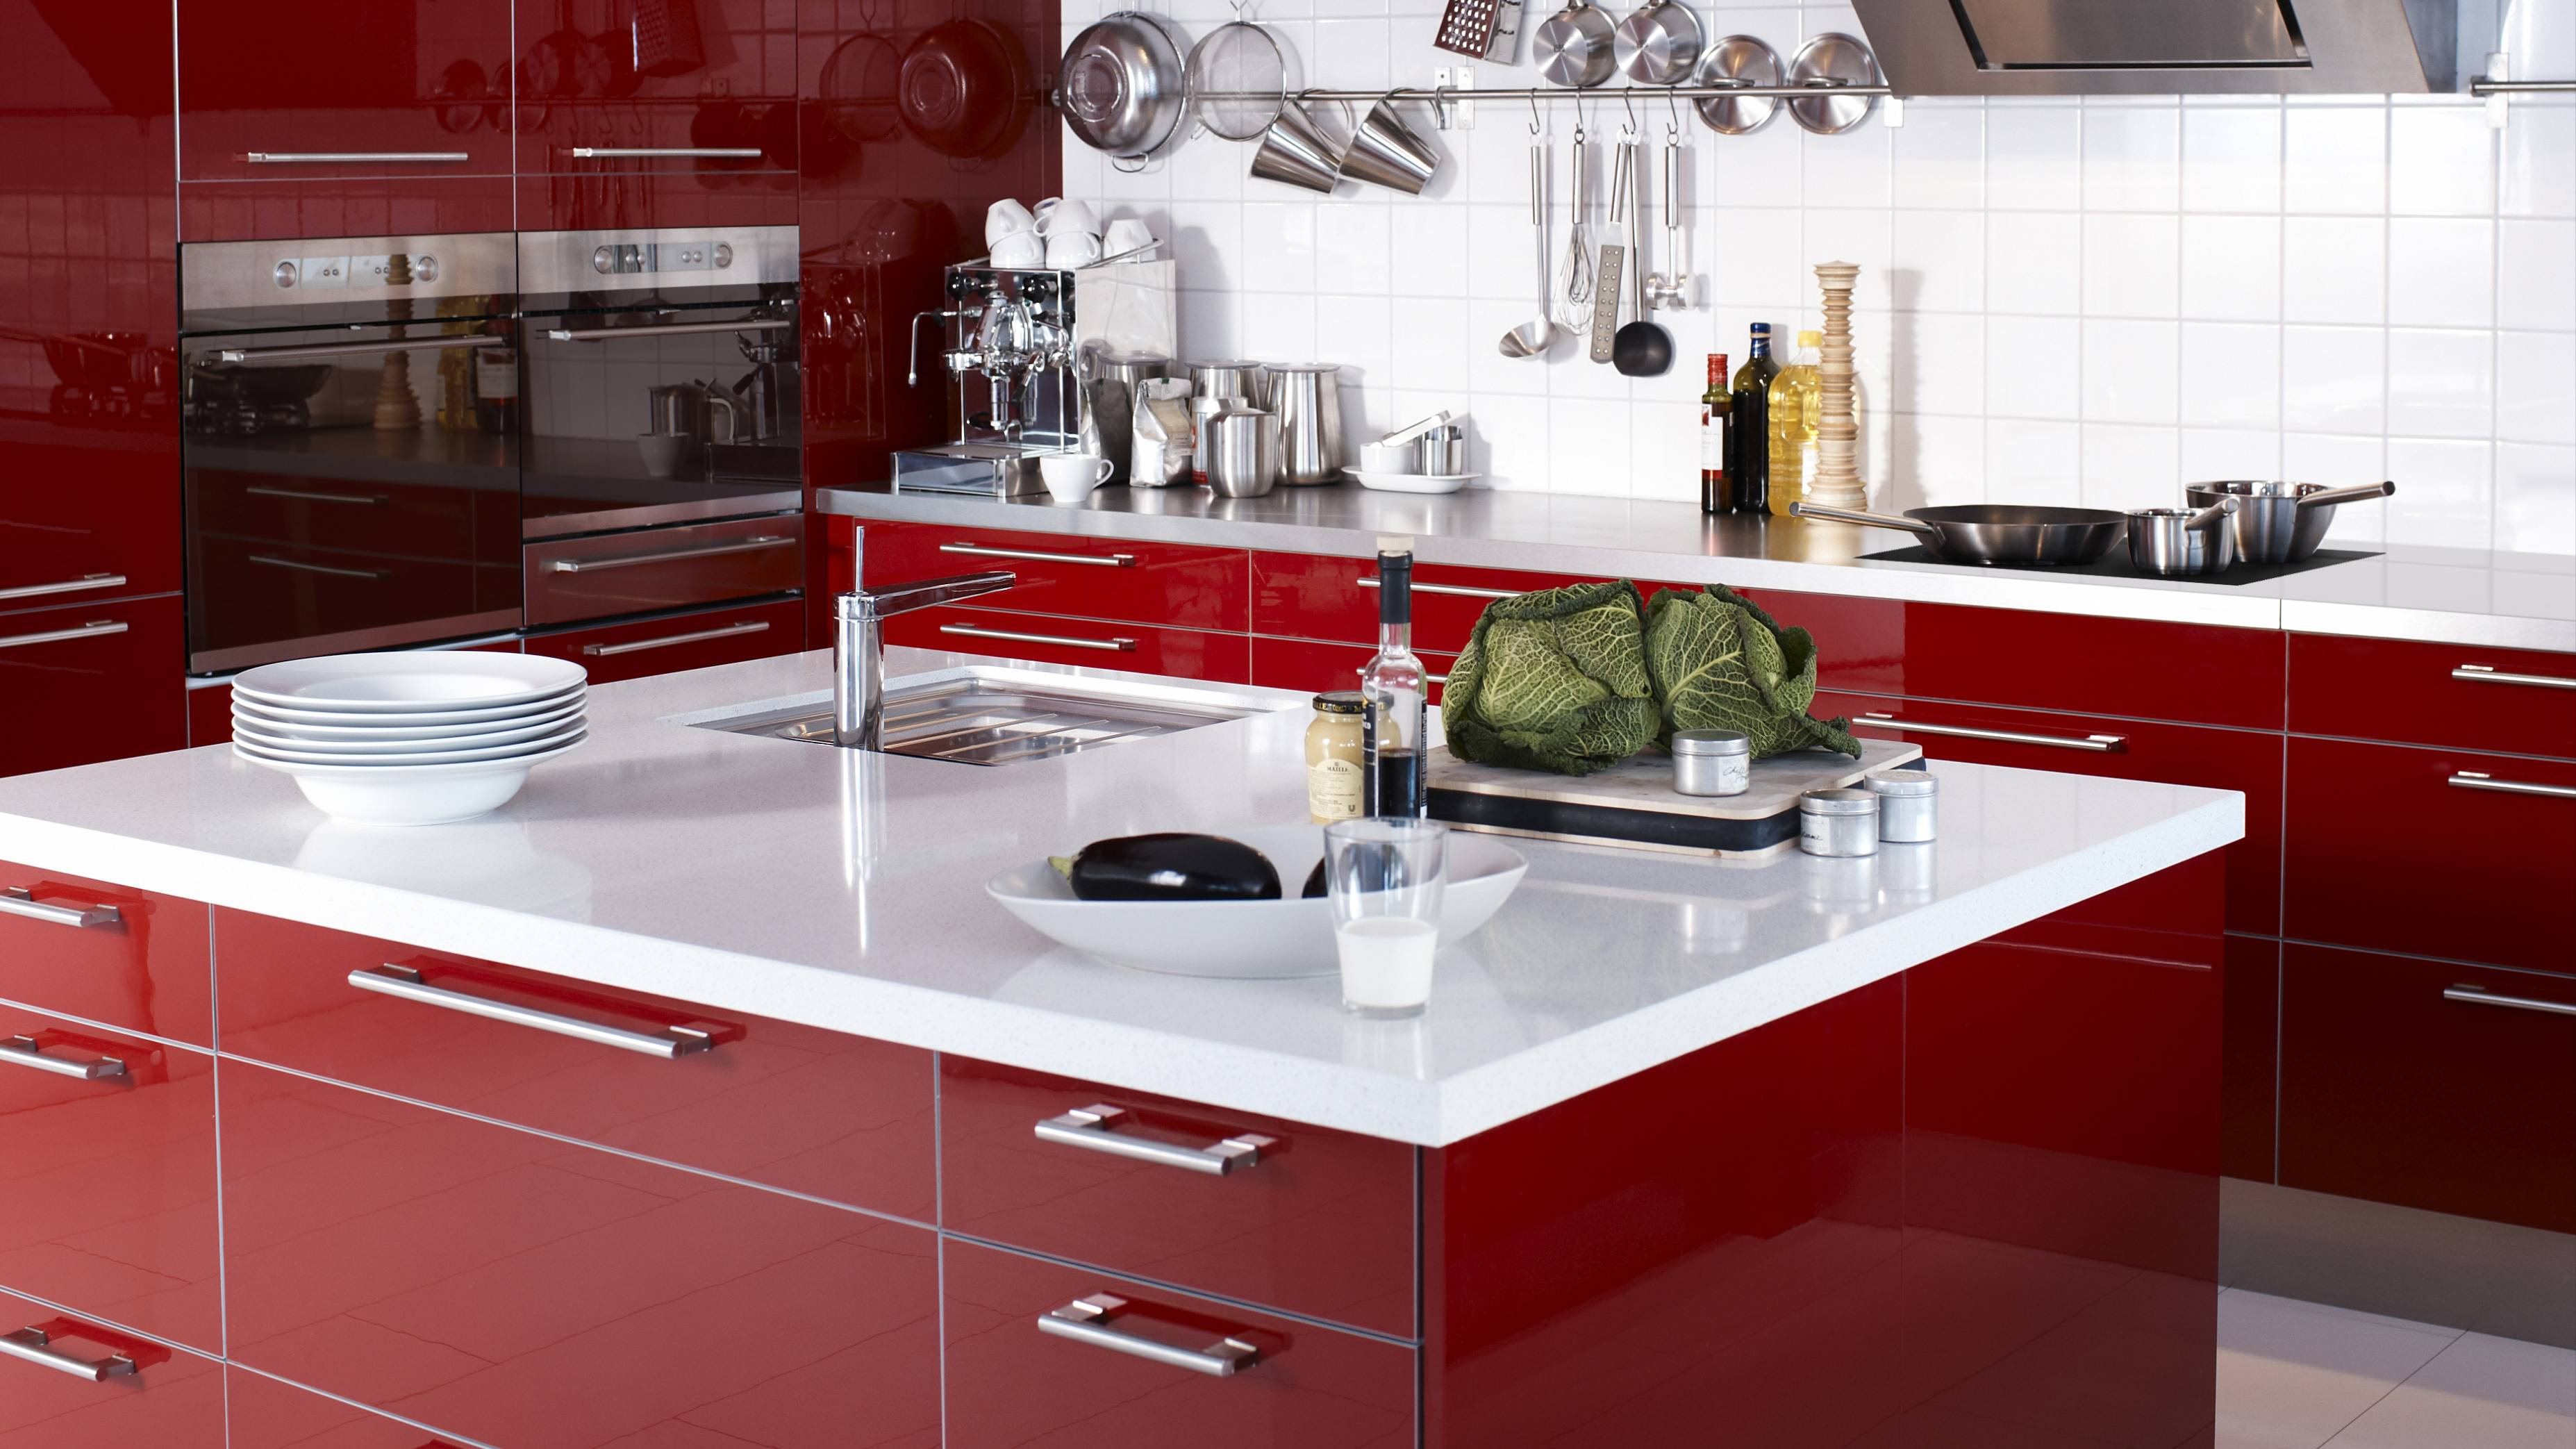 25 kitchen design ideas for your home for Cuisine moderne rouge et blanc